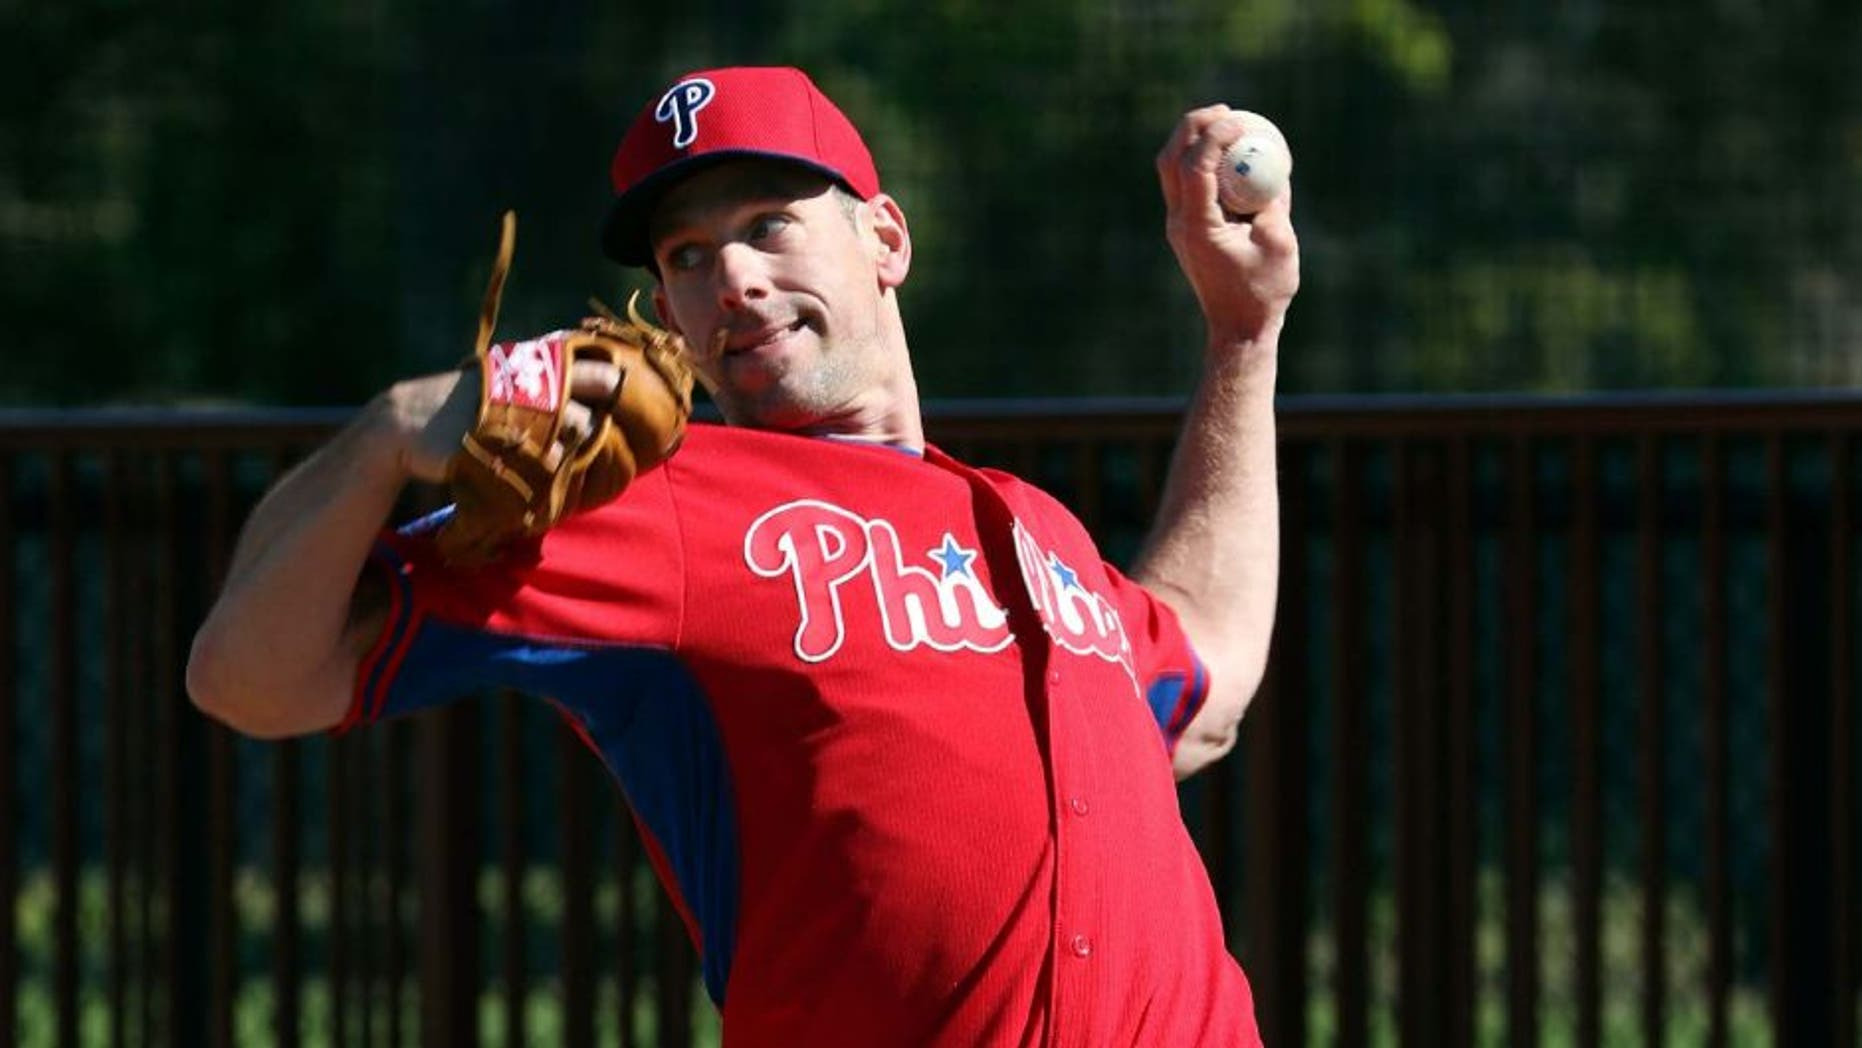 Feb 19, 2015; Clearwater, FL, USA; Philadelphia Phillies starting pitcher Cliff Lee (33) during spring training workouts at Bright House Field. Mandatory Credit: Reinhold Matay-USA TODAY Sports